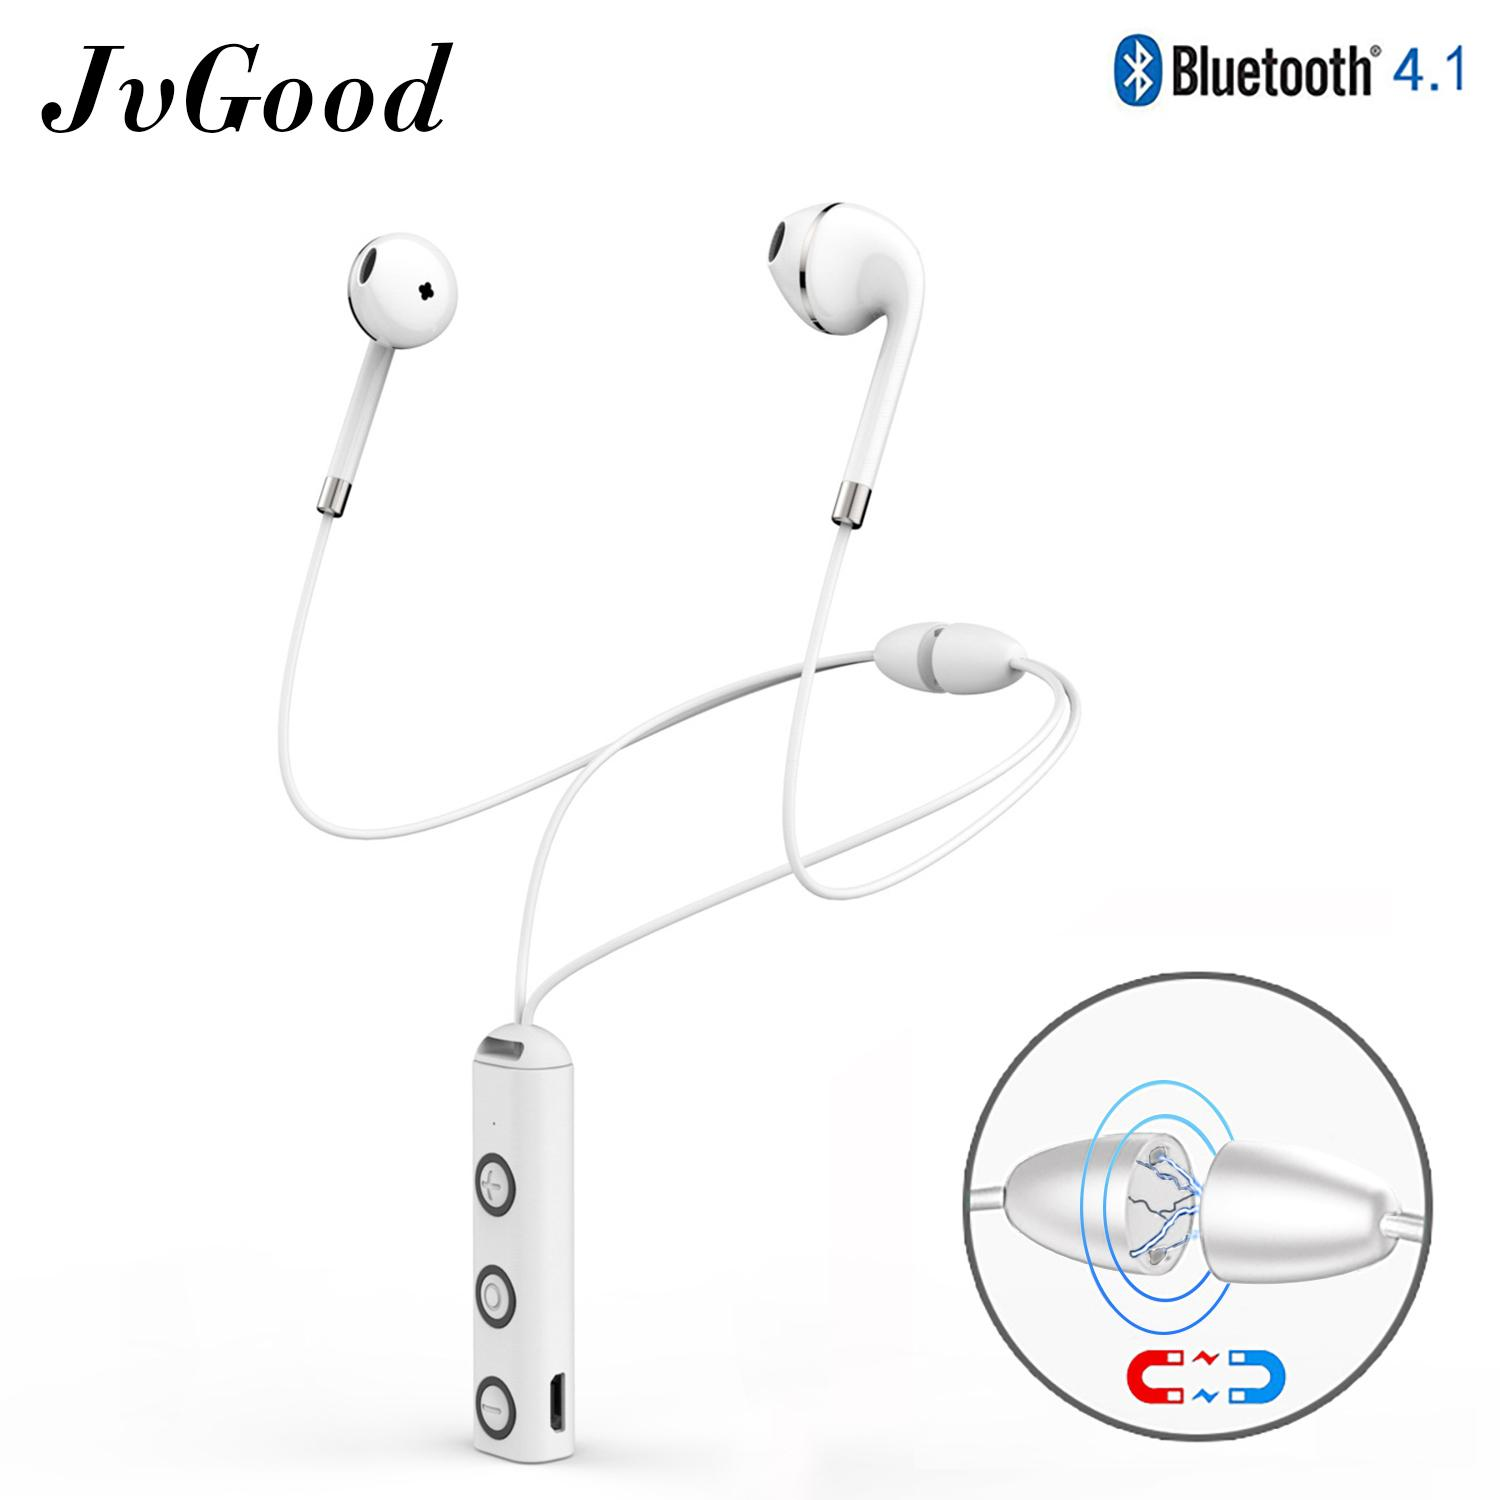 3dfa2d2082f JvGood Wireless Earbuds Necklace Earphones Bluetooth Headsets Hands-free  Earphones Sports Headphones Stereo Voice Announcement